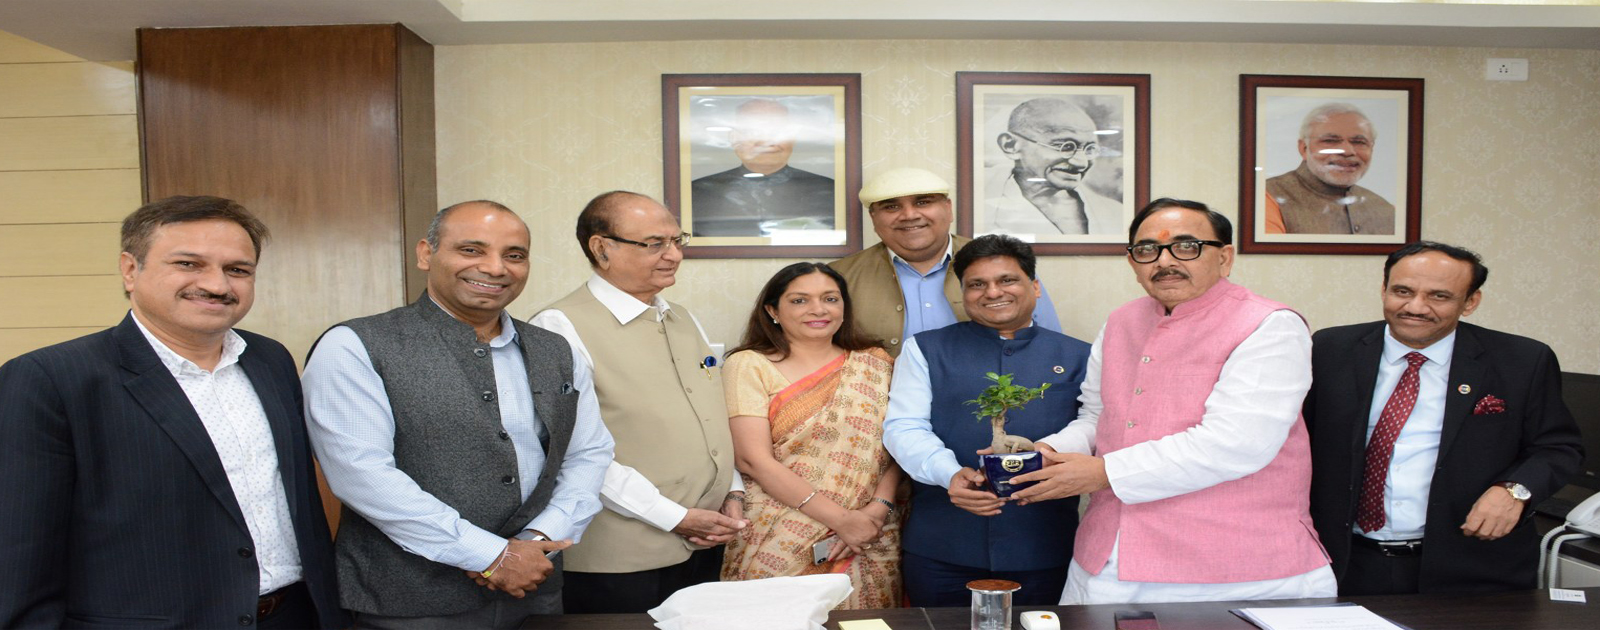 Call on Meeting with Dr. Mahendra Nath Pandey, Hon'ble Union Minister of Skill Development & Entrepreneurship